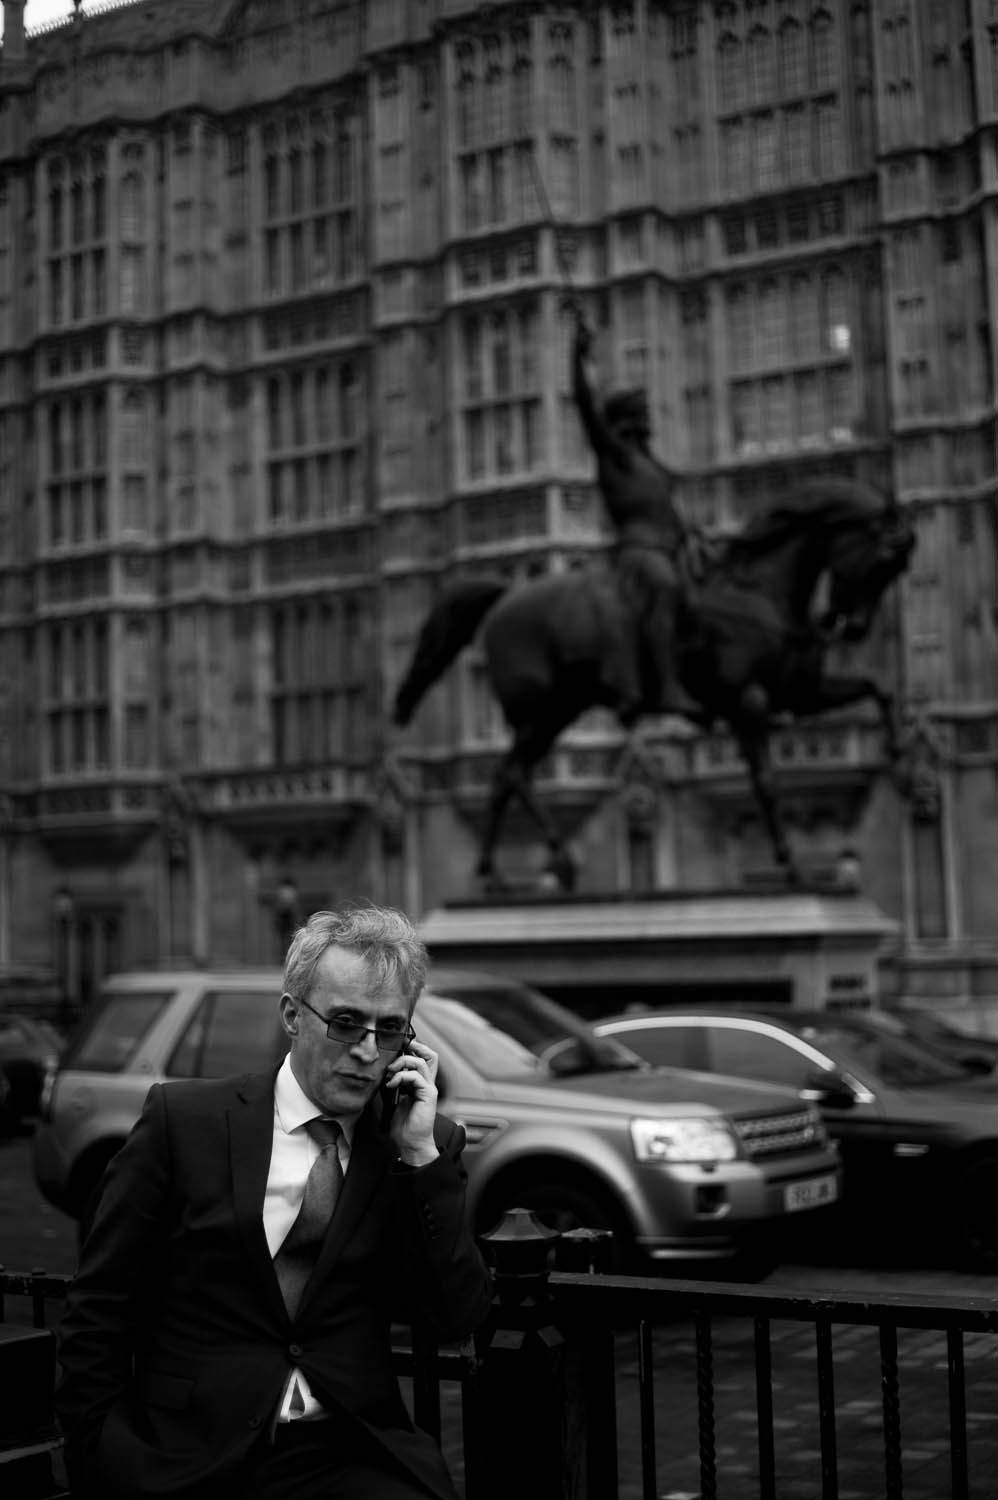 A man in a suit speaking on the phone in front of a horse statue in London